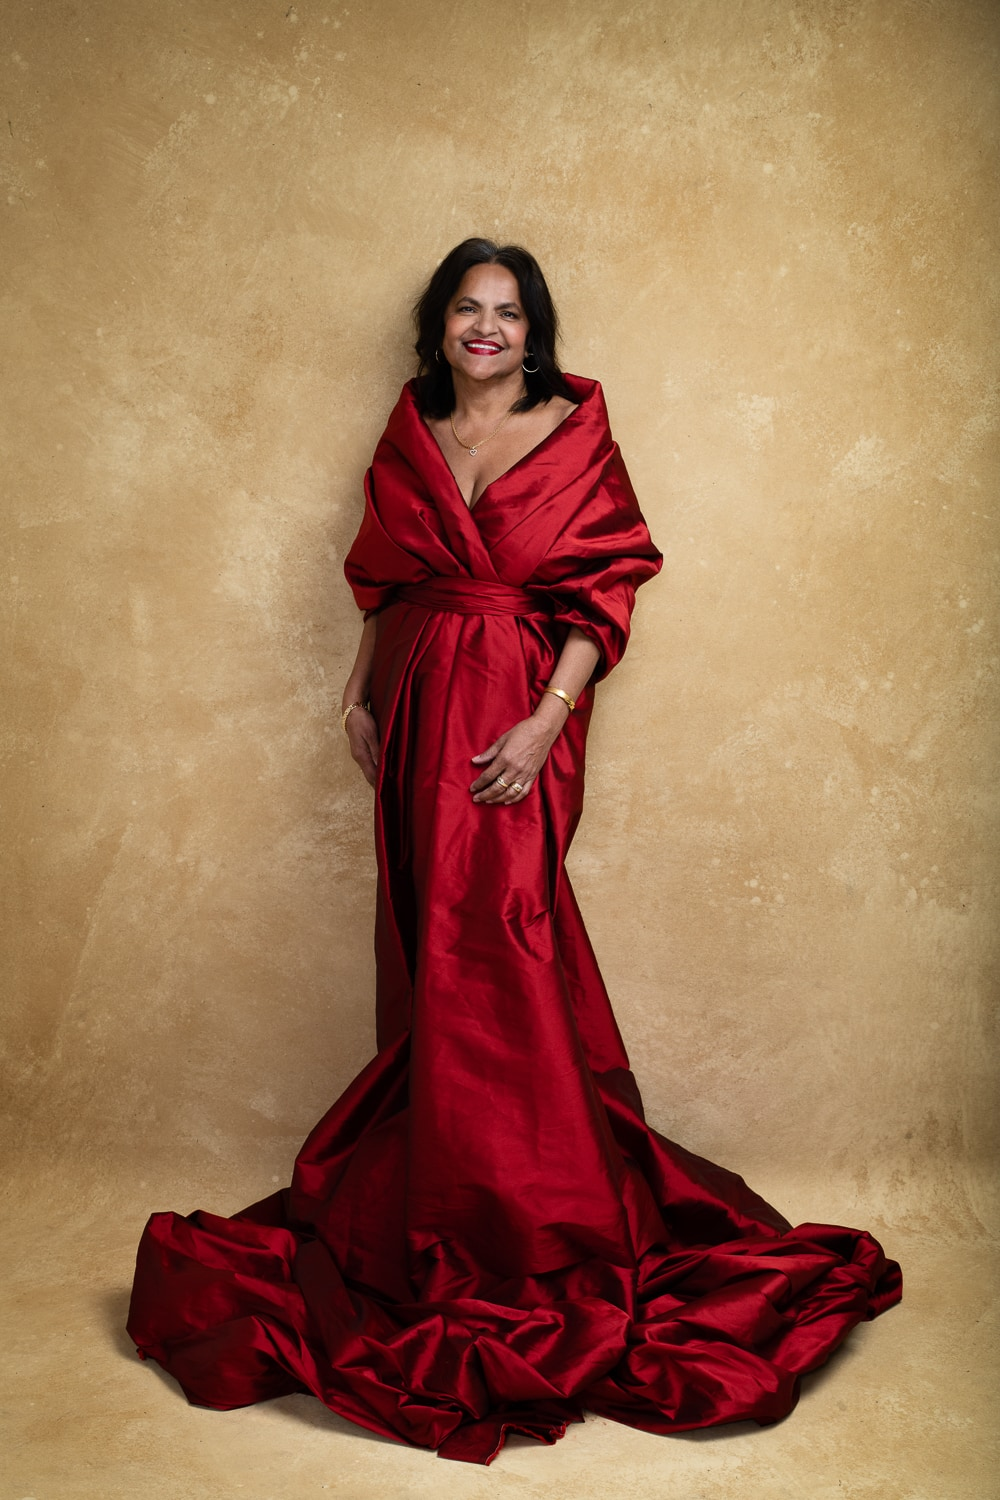 Woman wearing a red gown against a golden brown backdrop